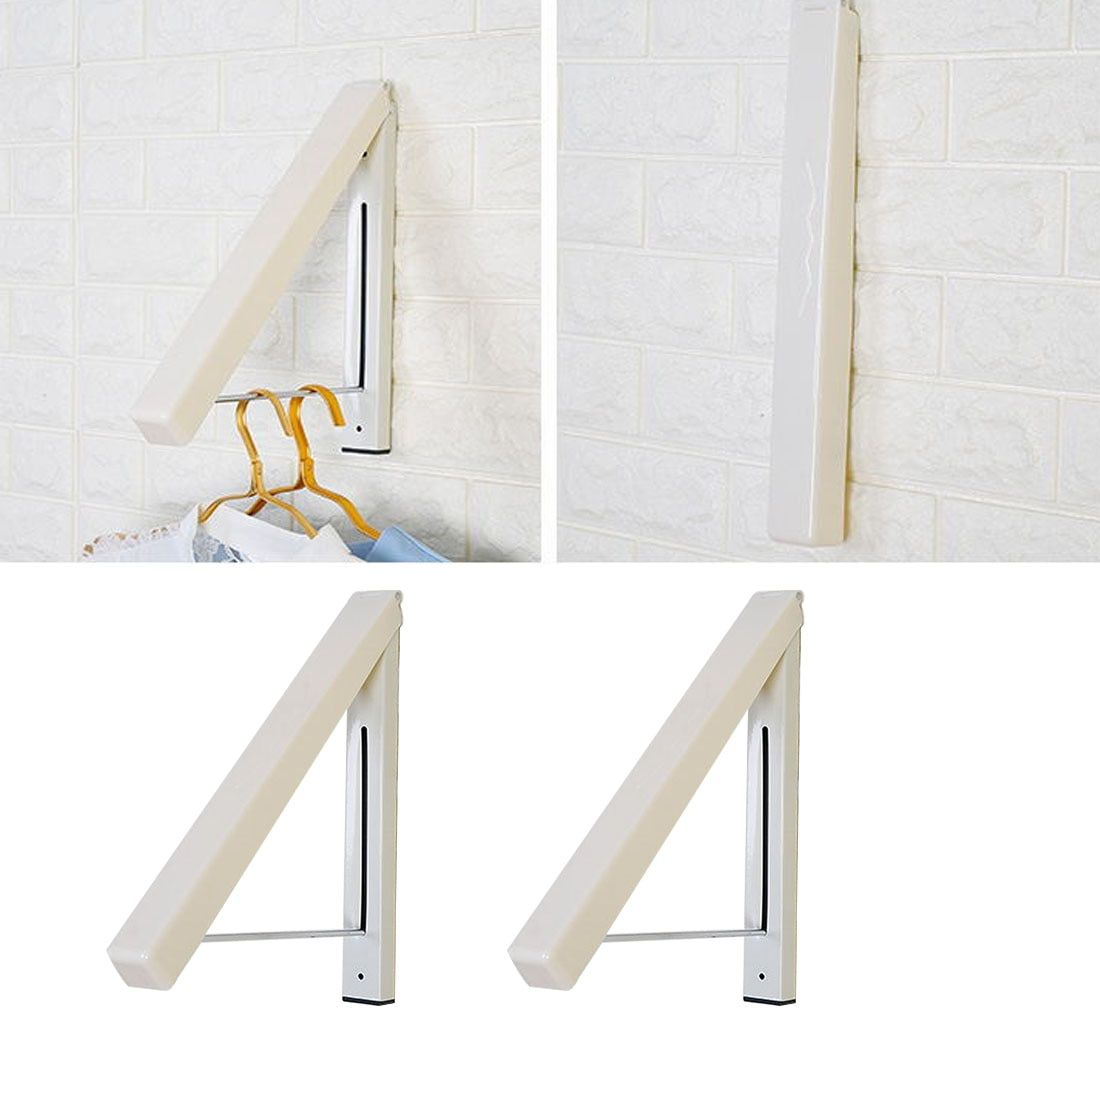 SDR Stainless Steel Wall Hanger Retractable Indoor Clothes Hanger Magic Foldable Drying Rack Waterproof Clothes Towel Rack